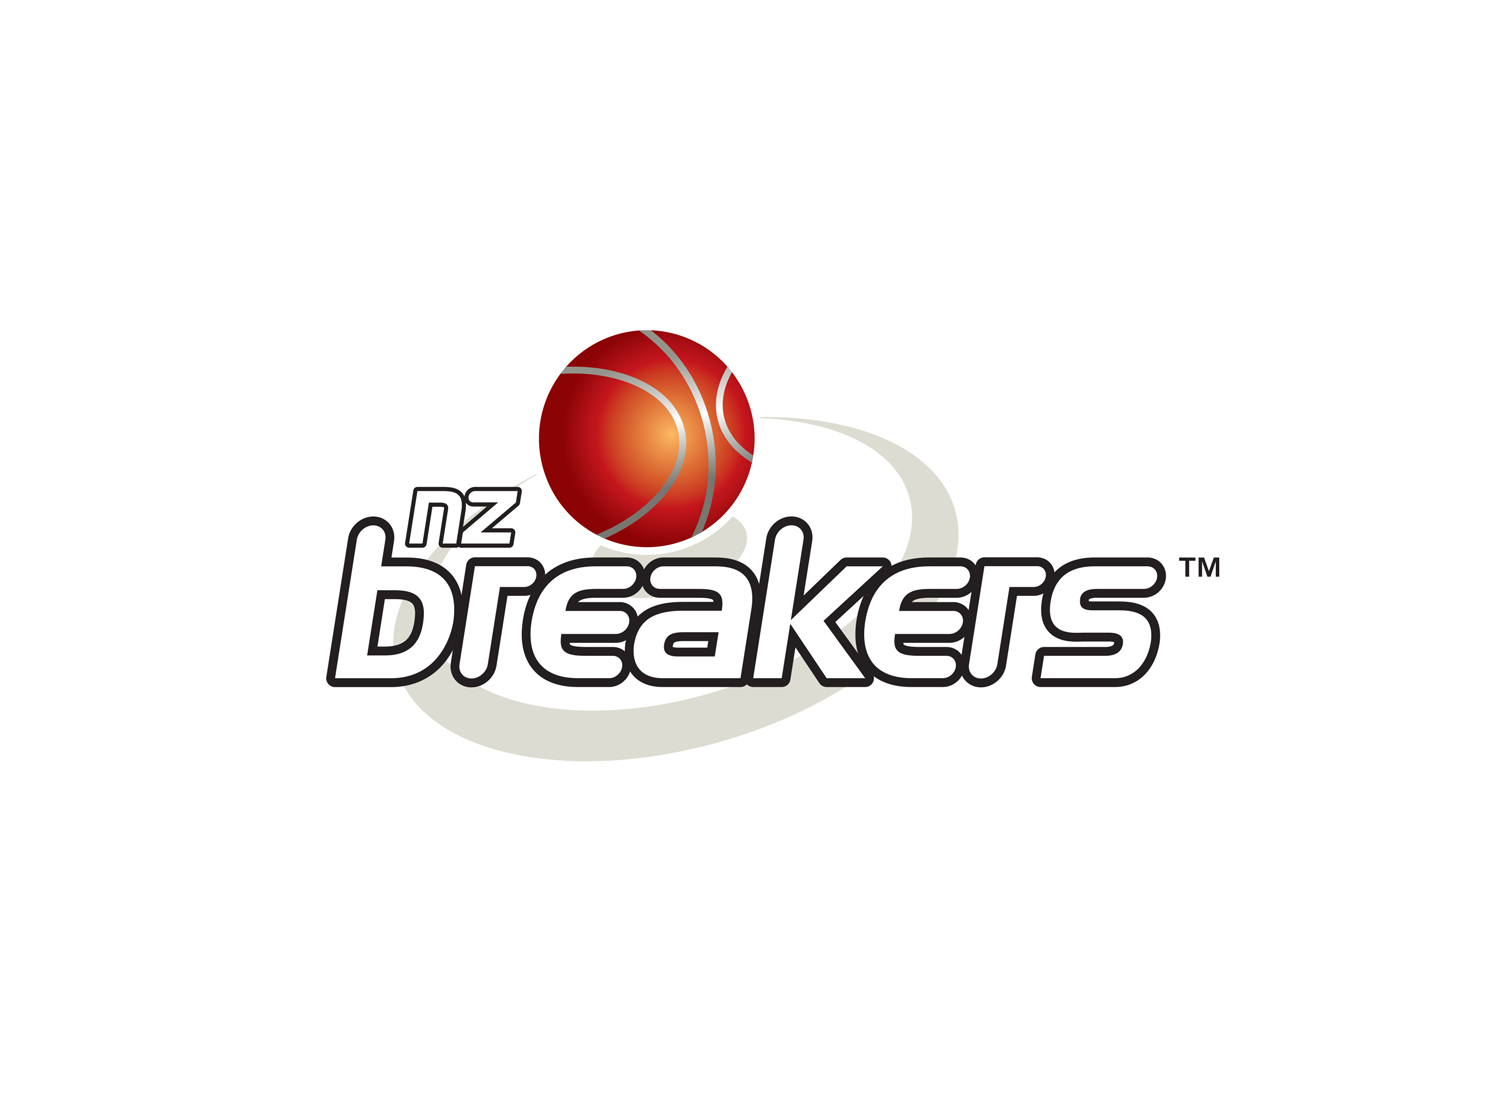 BREAKERS_LOGO.jpg